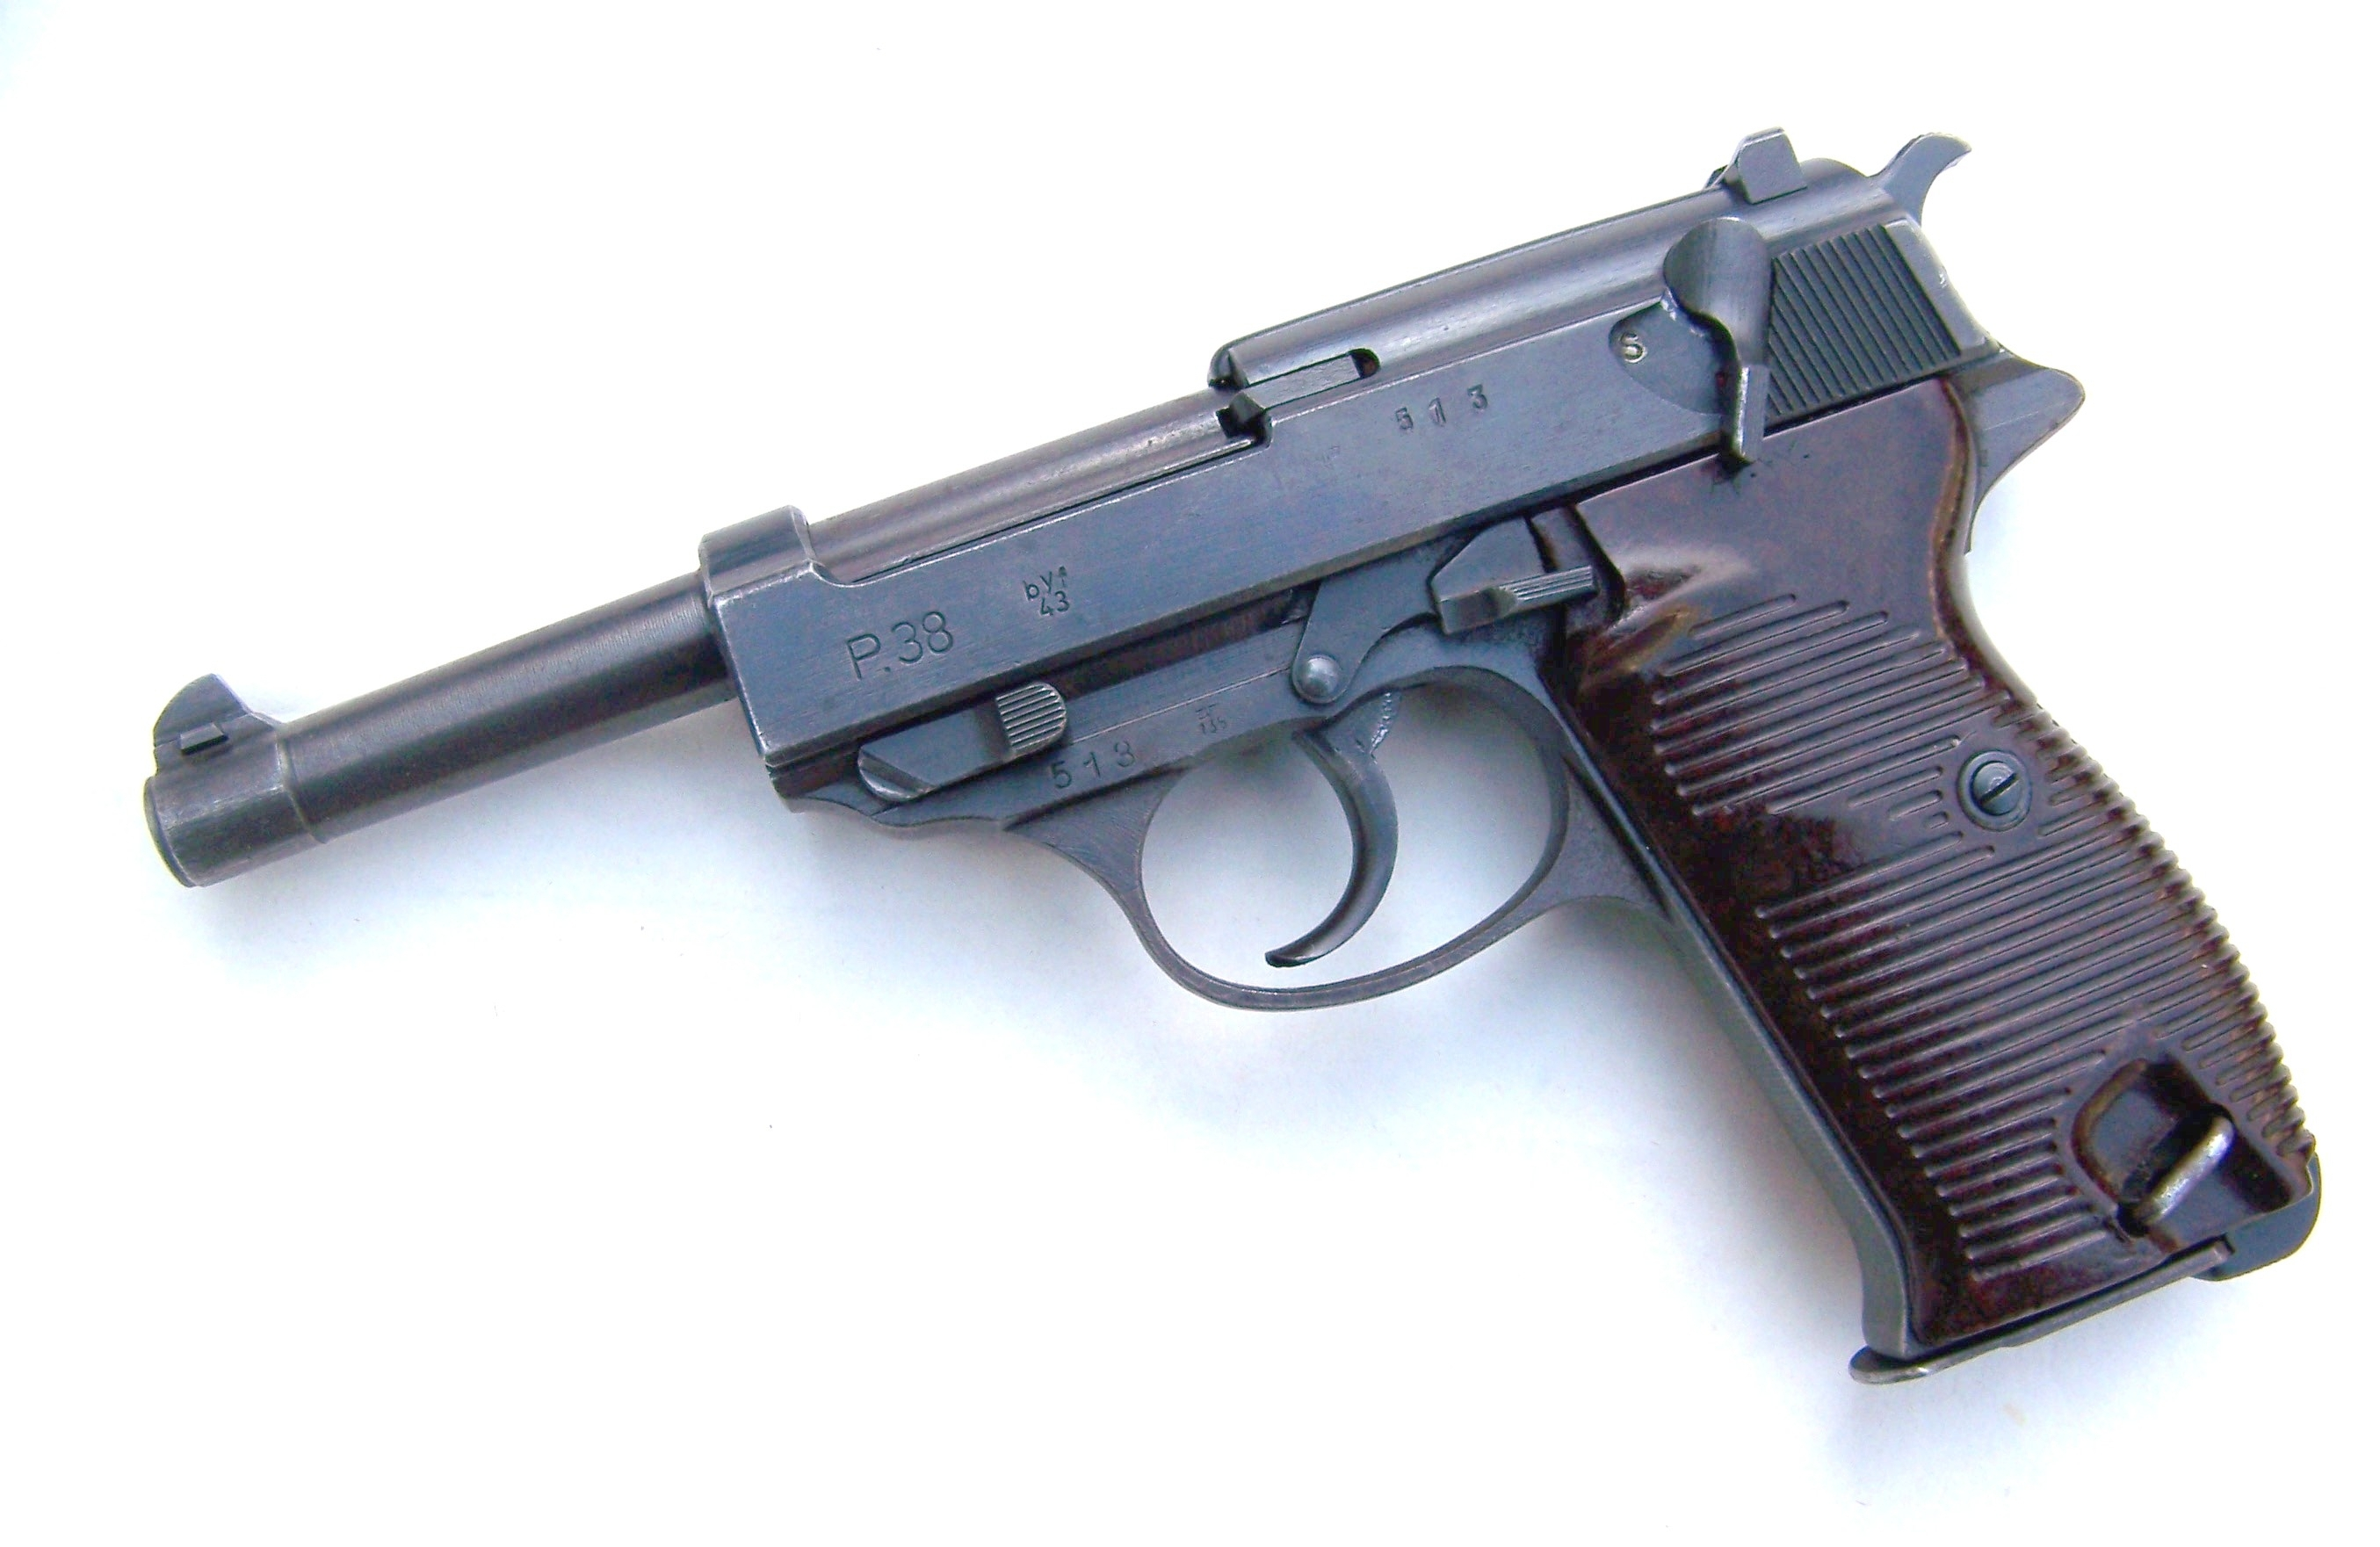 Walther P 38 Wallpaper For Computer